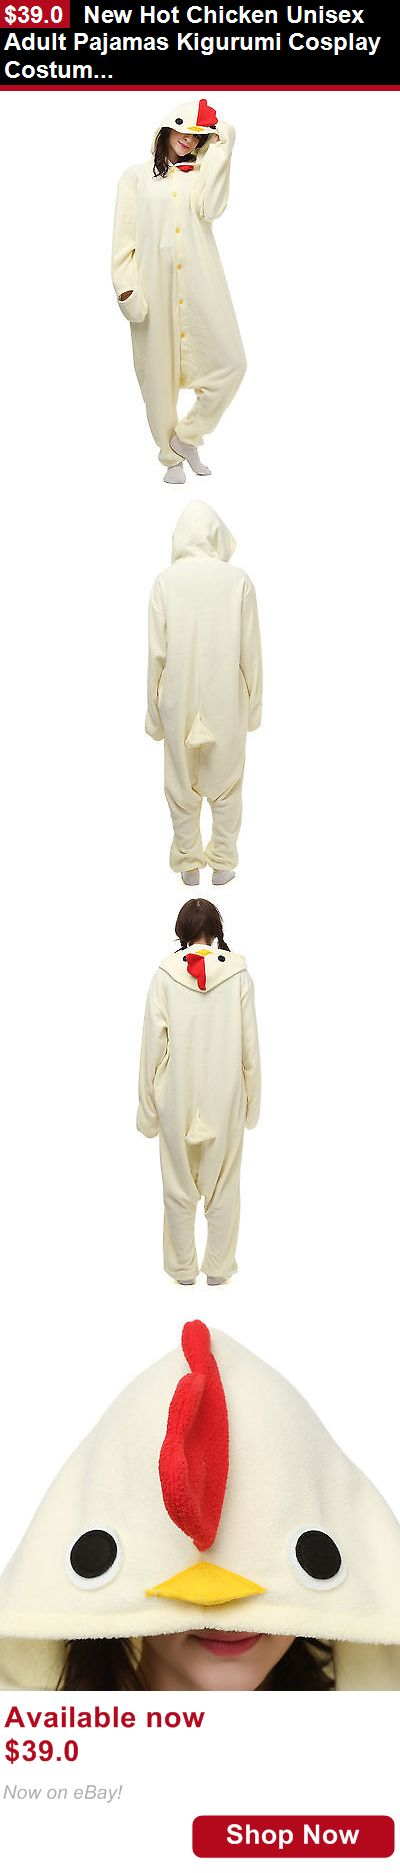 Costumes and reenactment attire: New Hot Chicken Unisex Adult Pajamas Kigurumi Cosplay Costume Animal Onesie BUY IT NOW ONLY: $39.0